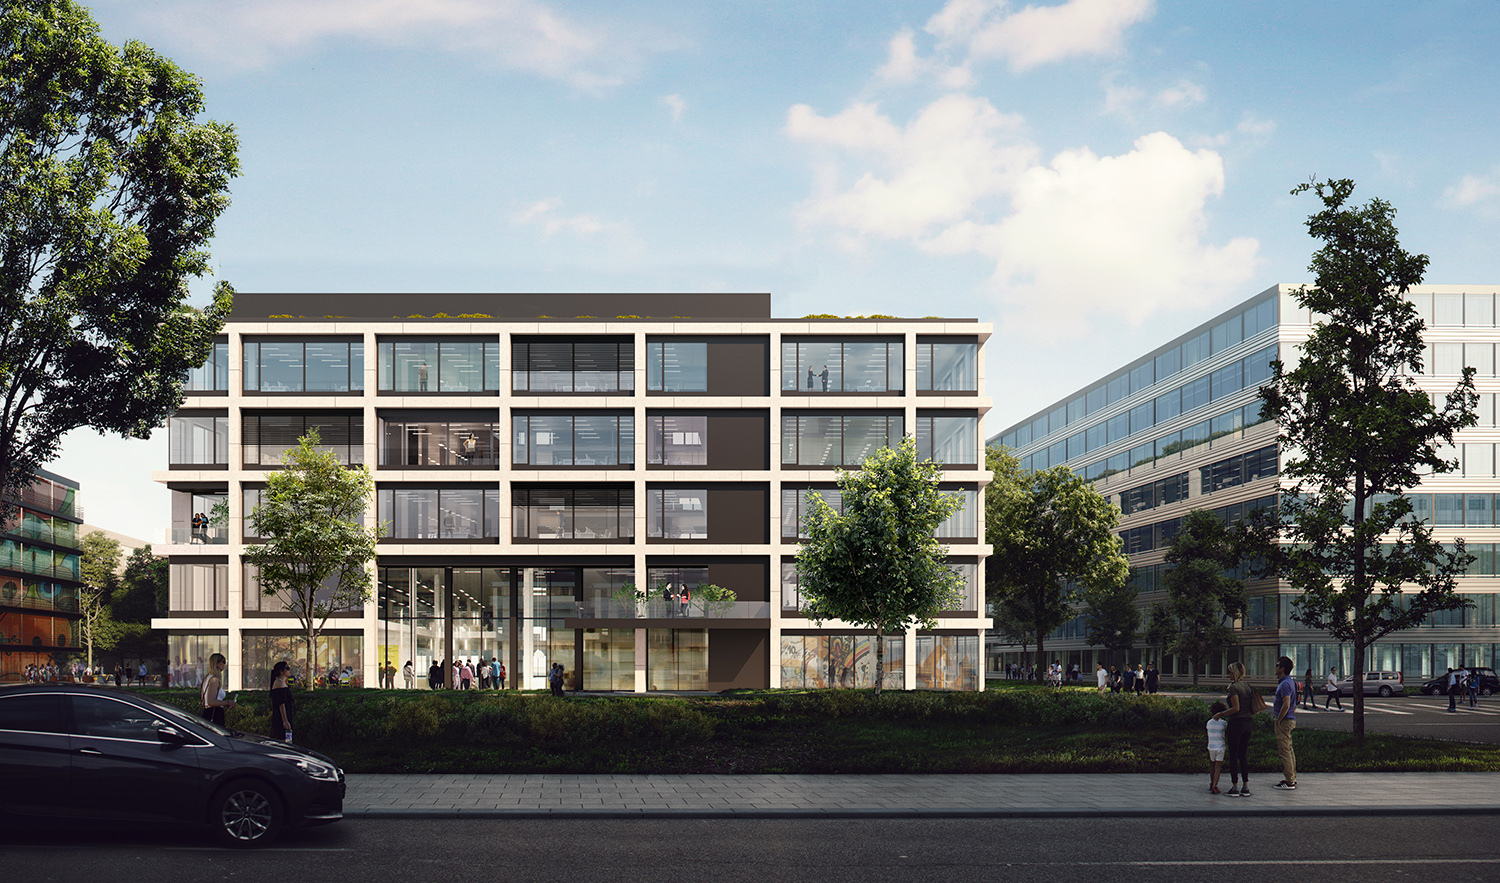 Kaan Architecten Designs New Facades For Munich S Icampus